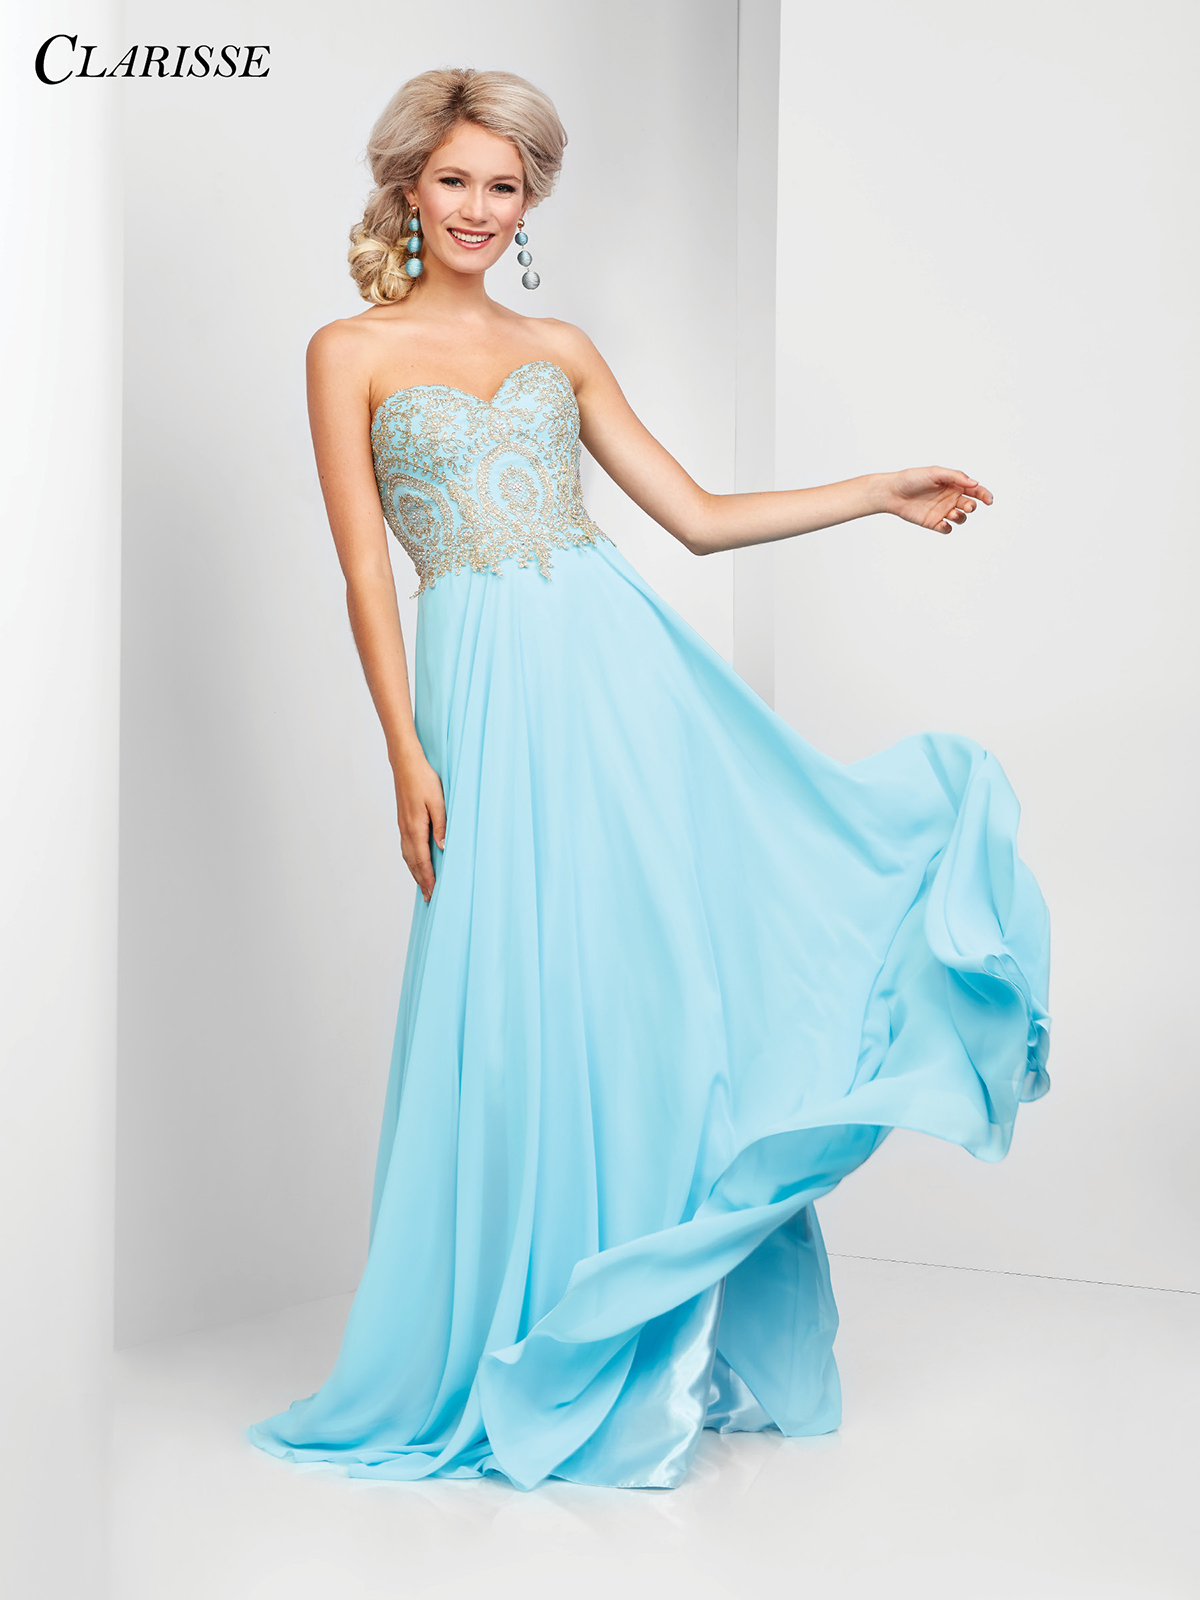 Clarisse 2715 Prom Dress | Promgirl.net